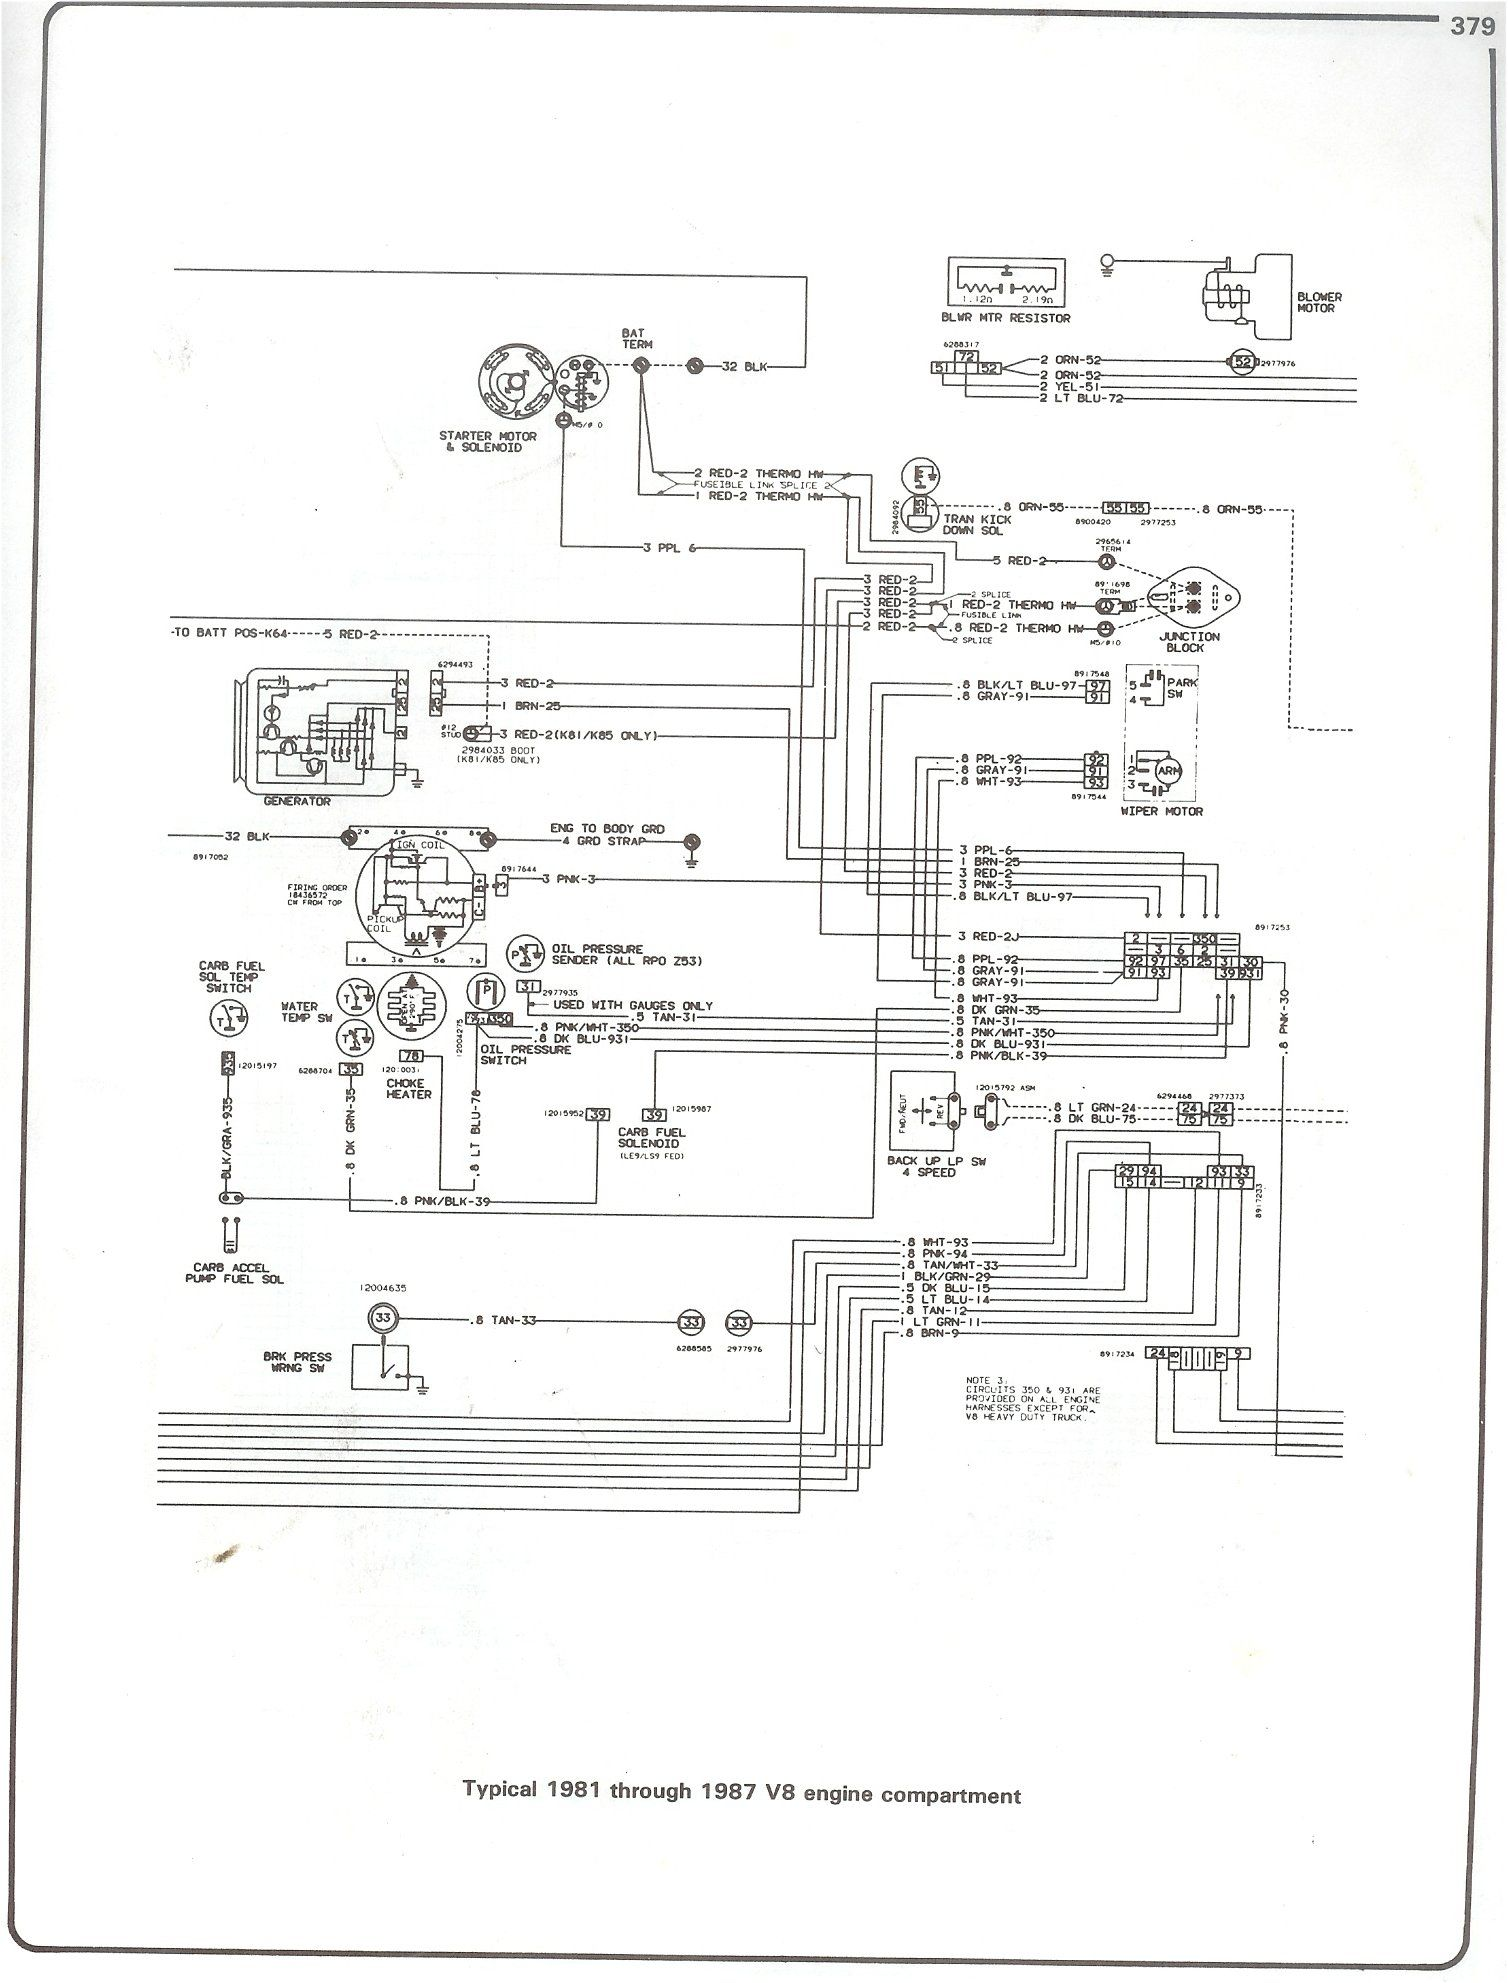 85 Chevy Truck Wiring Diagram | http://www.73-87chevytrucks.